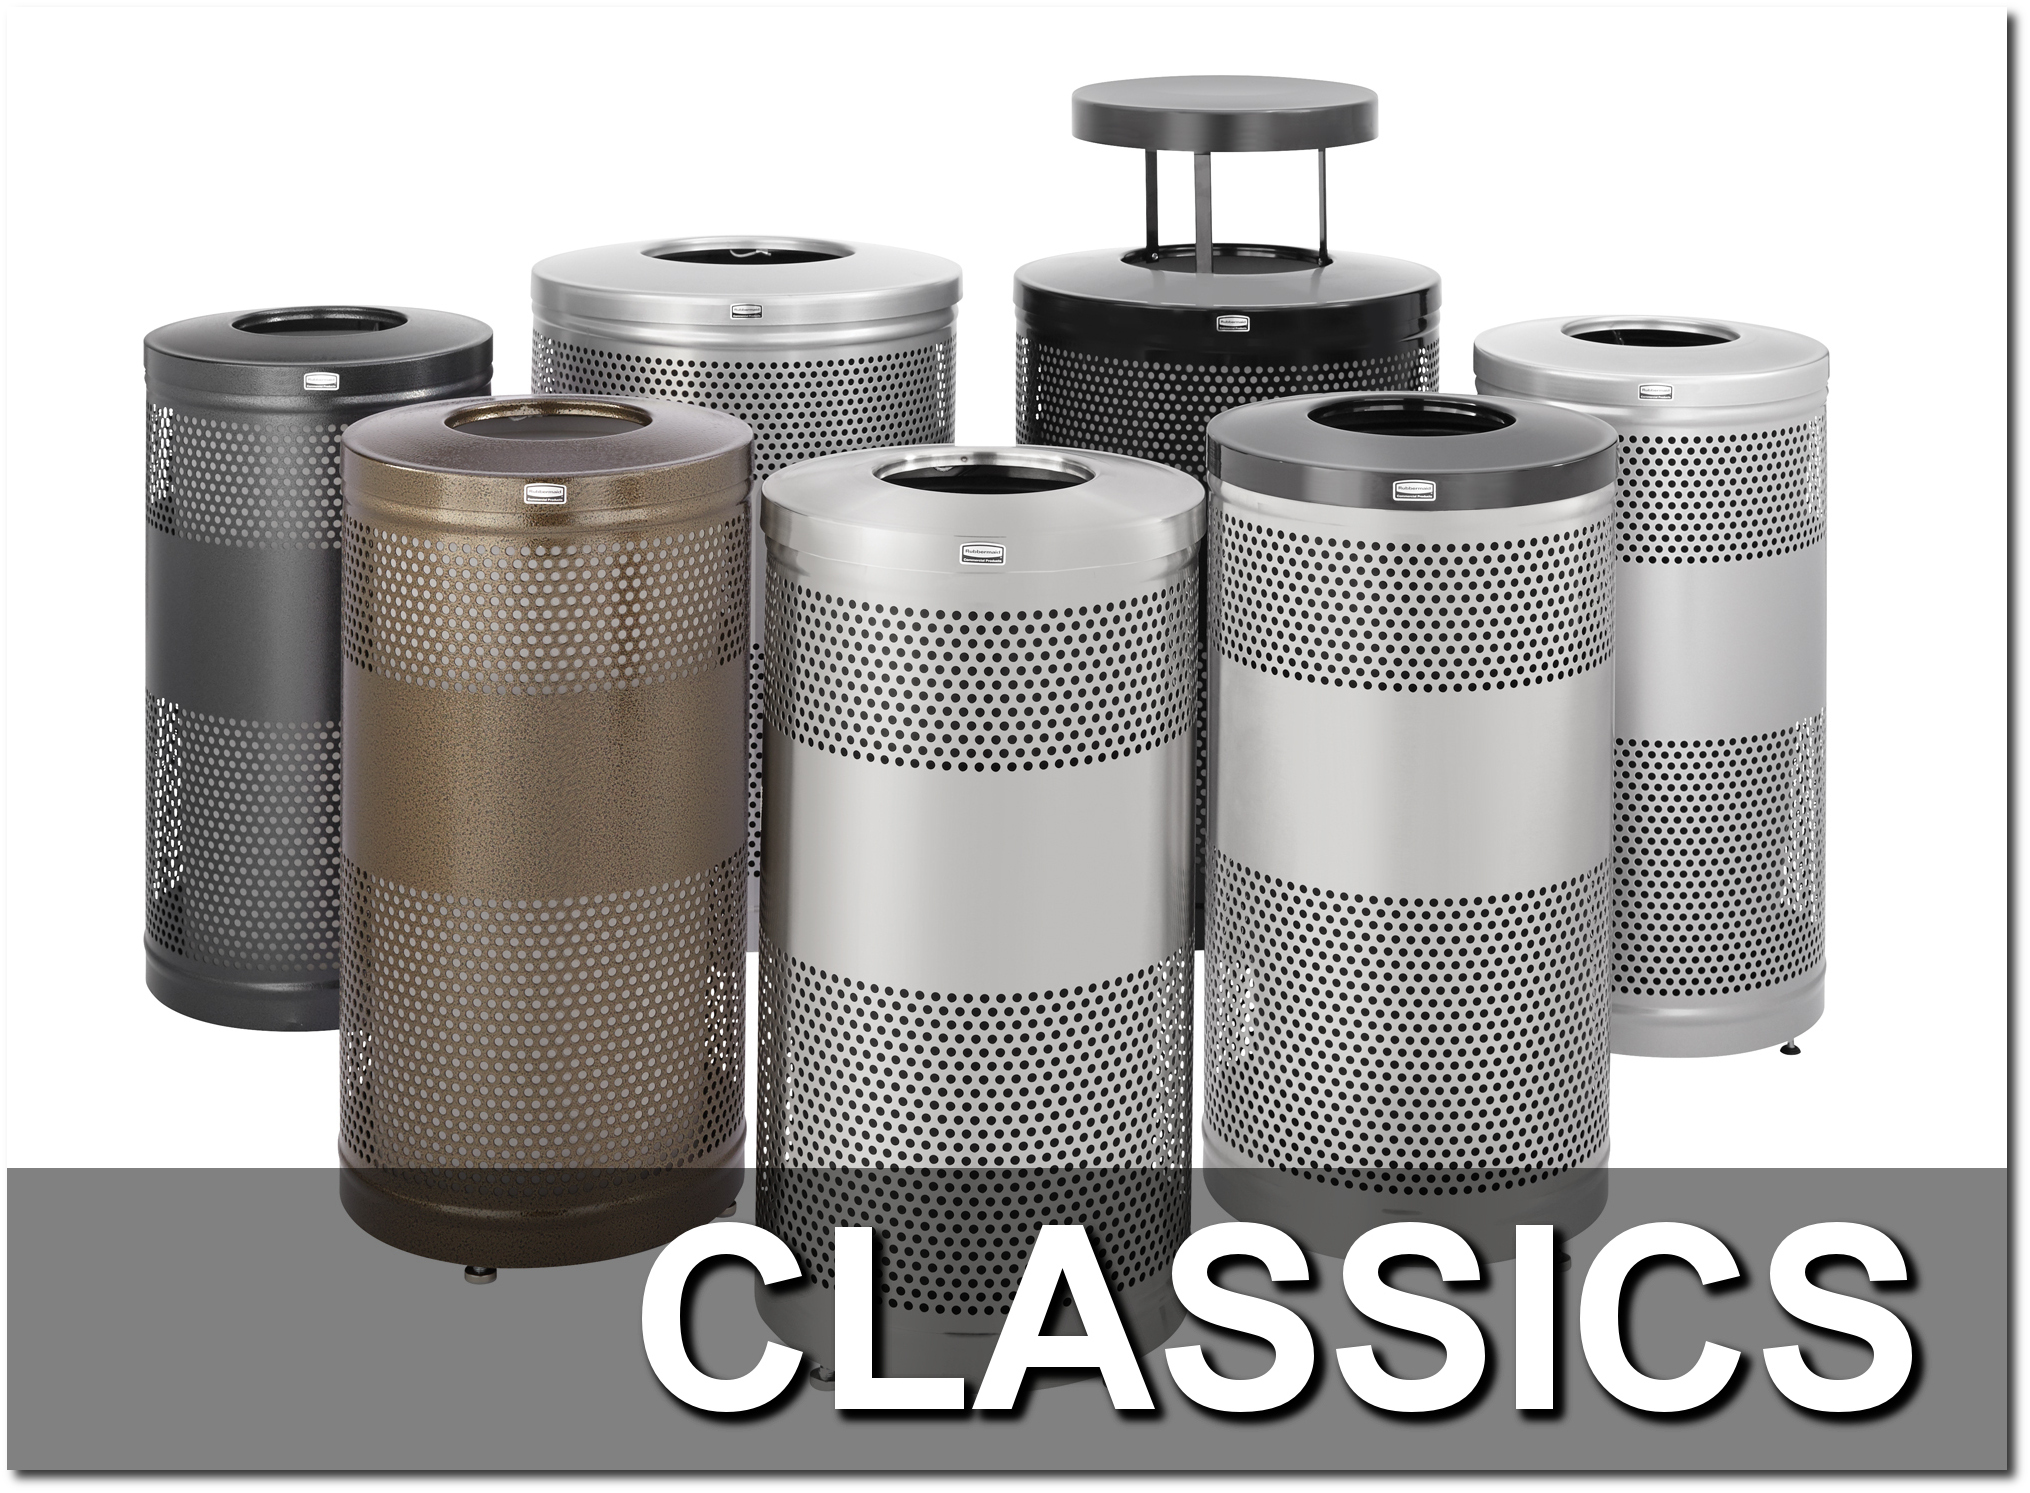 Classics Collection Trash Receptacles